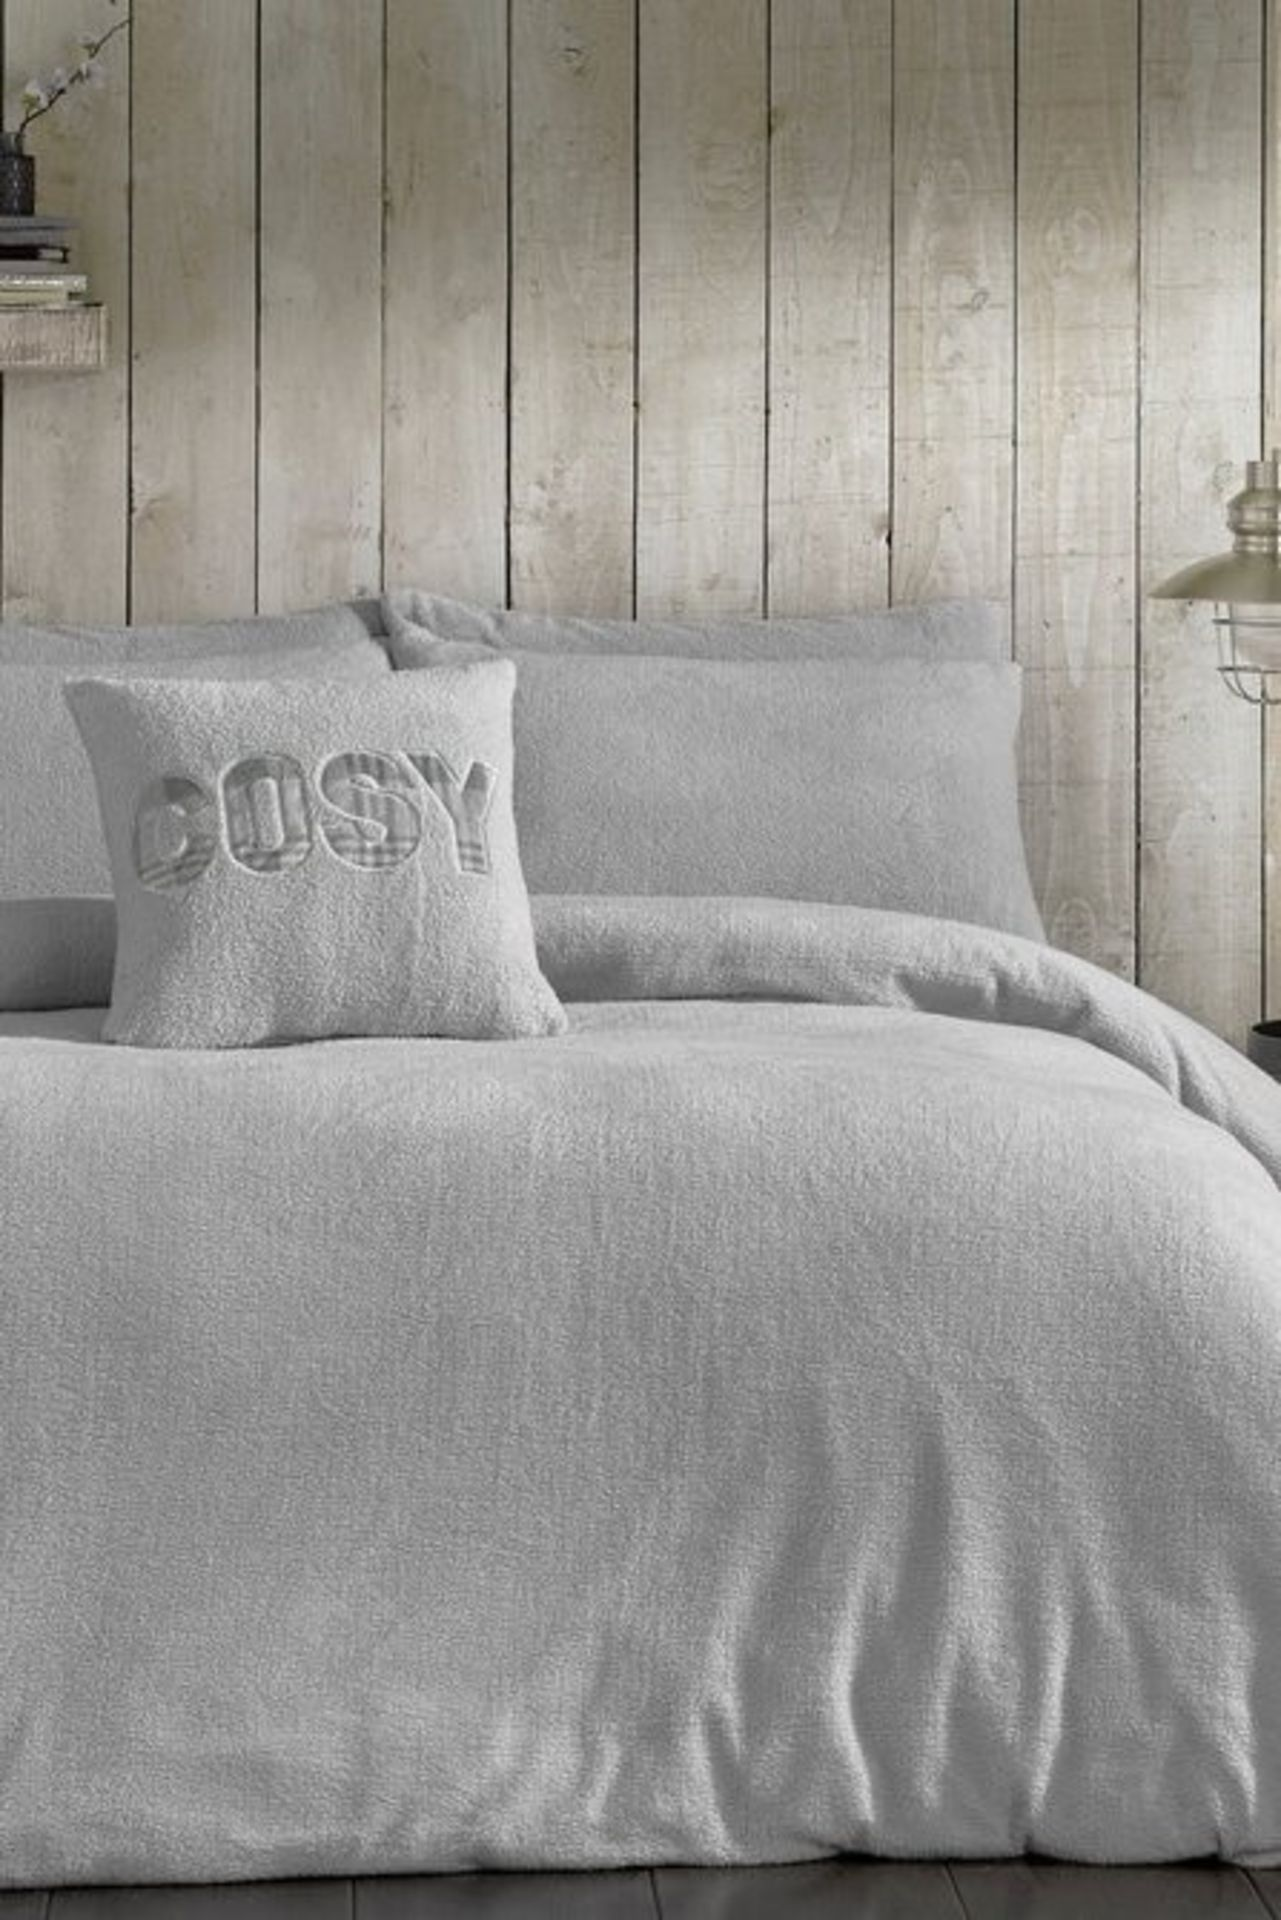 Lot 49 - 1 BAGGED COSY TEDDY FITTED SHEET IN SILVER GREY / SIZE: SINGLE / RRP £26.99 (PUBLIC VIEWING